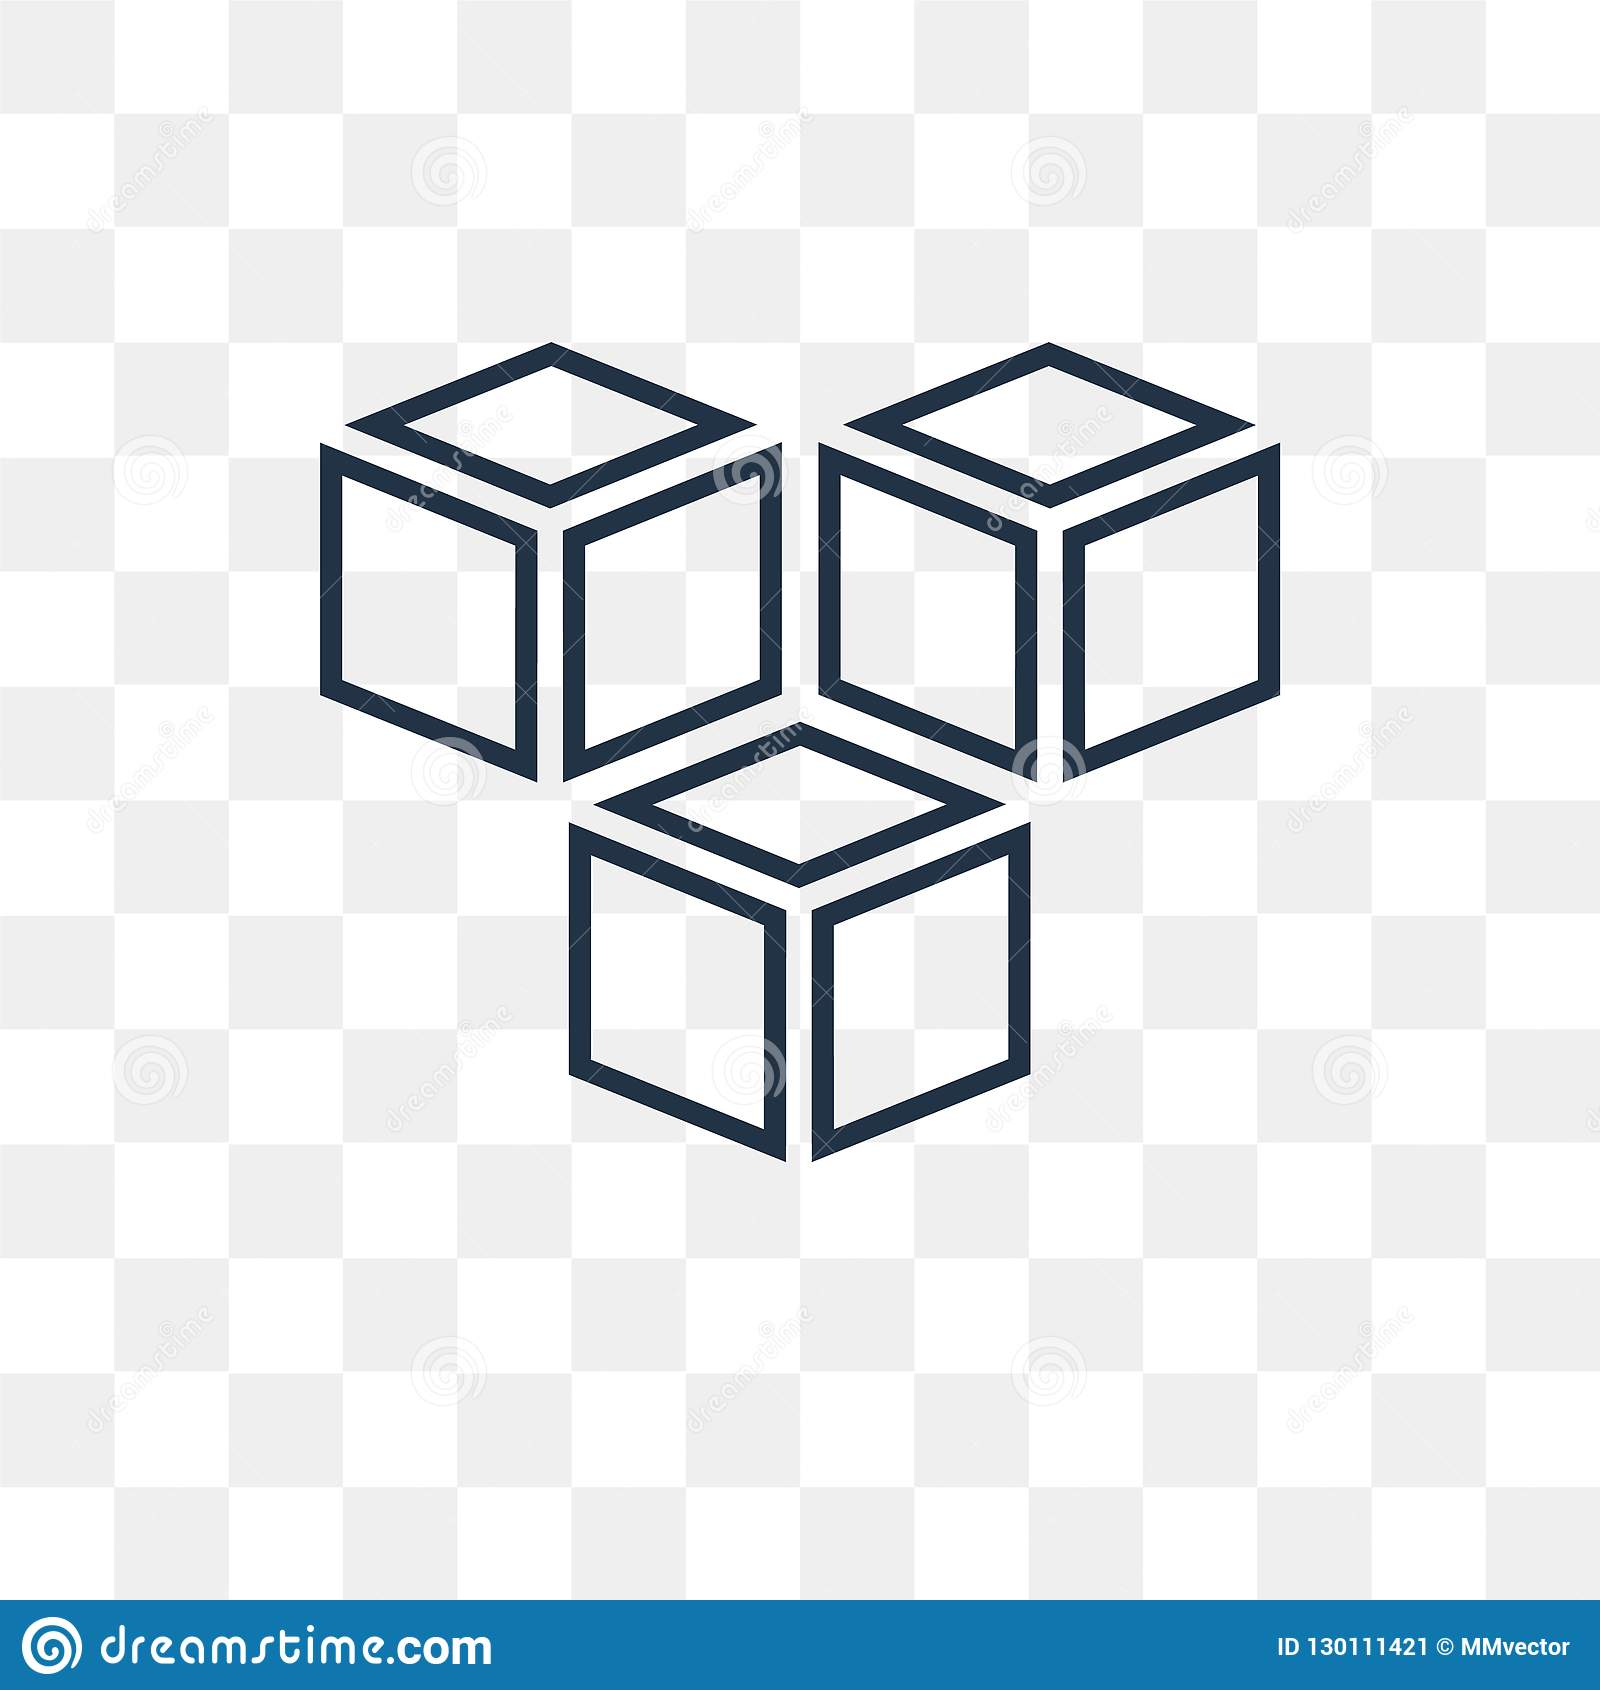 Cube Vector Icon Isolated On Transparent Background, Linear